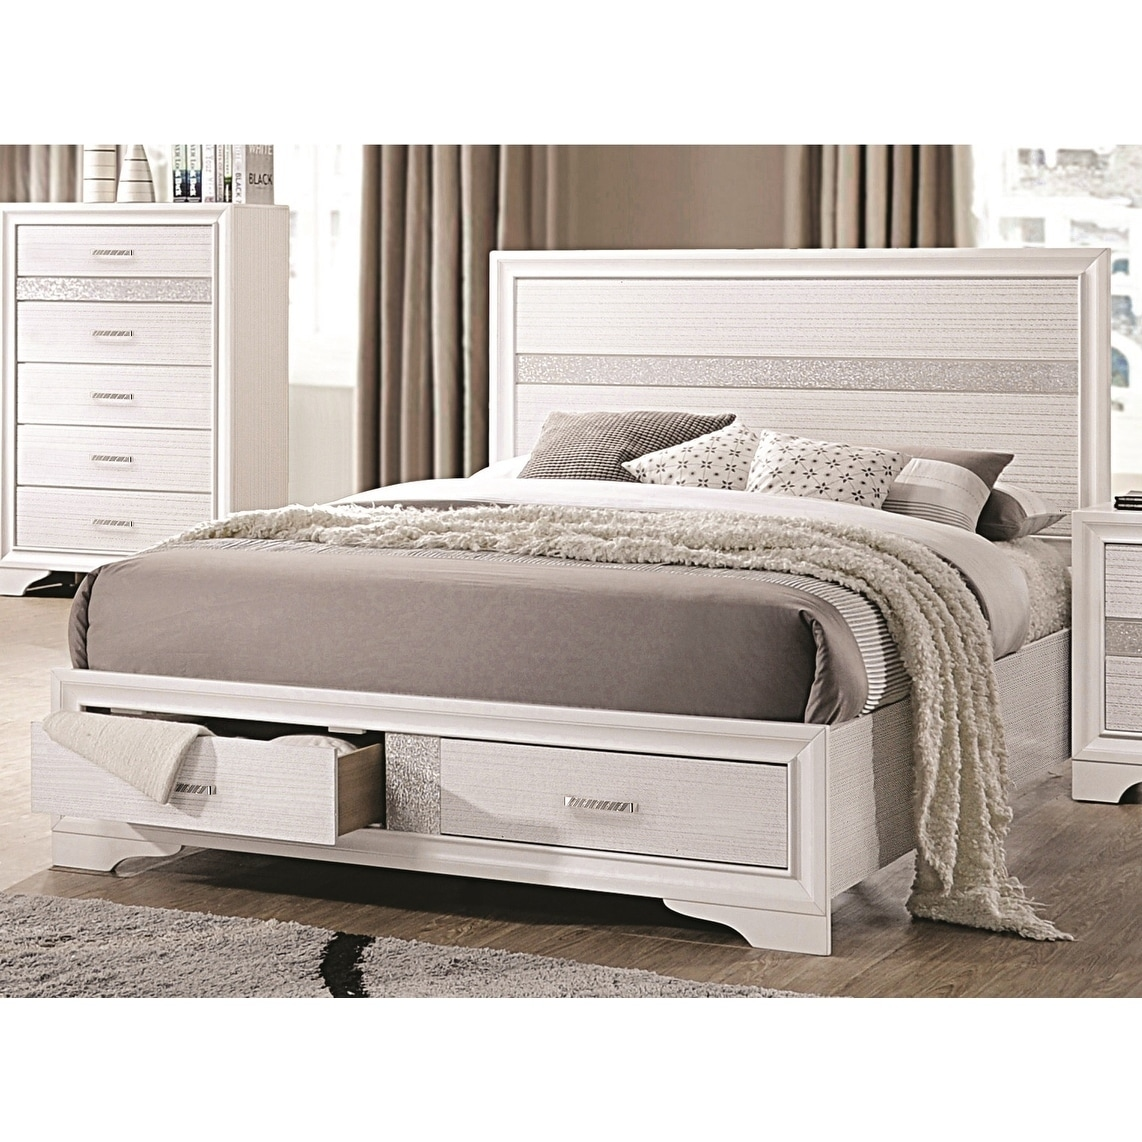 Shop Miranda Contemporary White 5-piece Bedroom Set - On Sale - Free ...